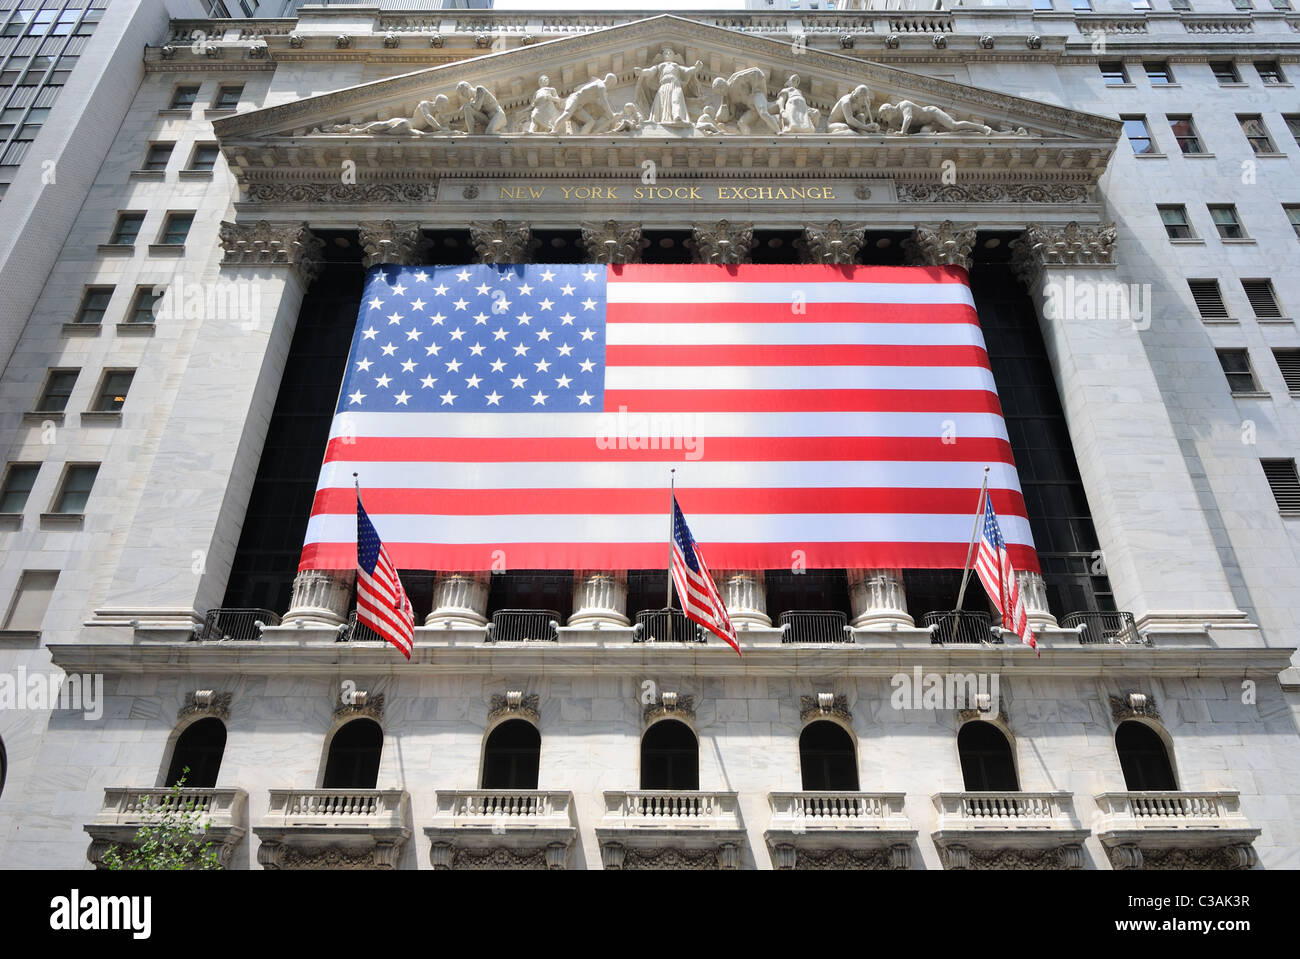 Building of the New York Stock Exchange in Lower Manhattan. - Stock Image